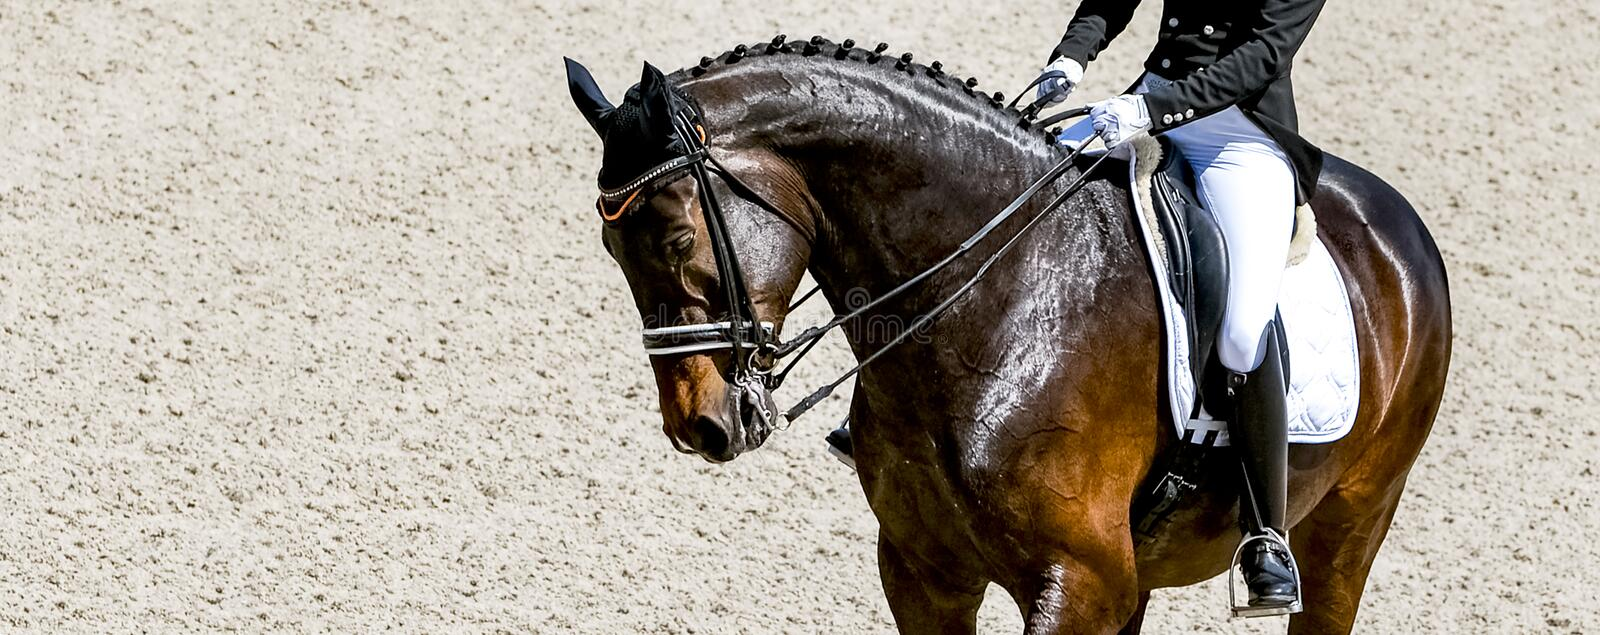 Dressage horse and rider in black uniform stock photo